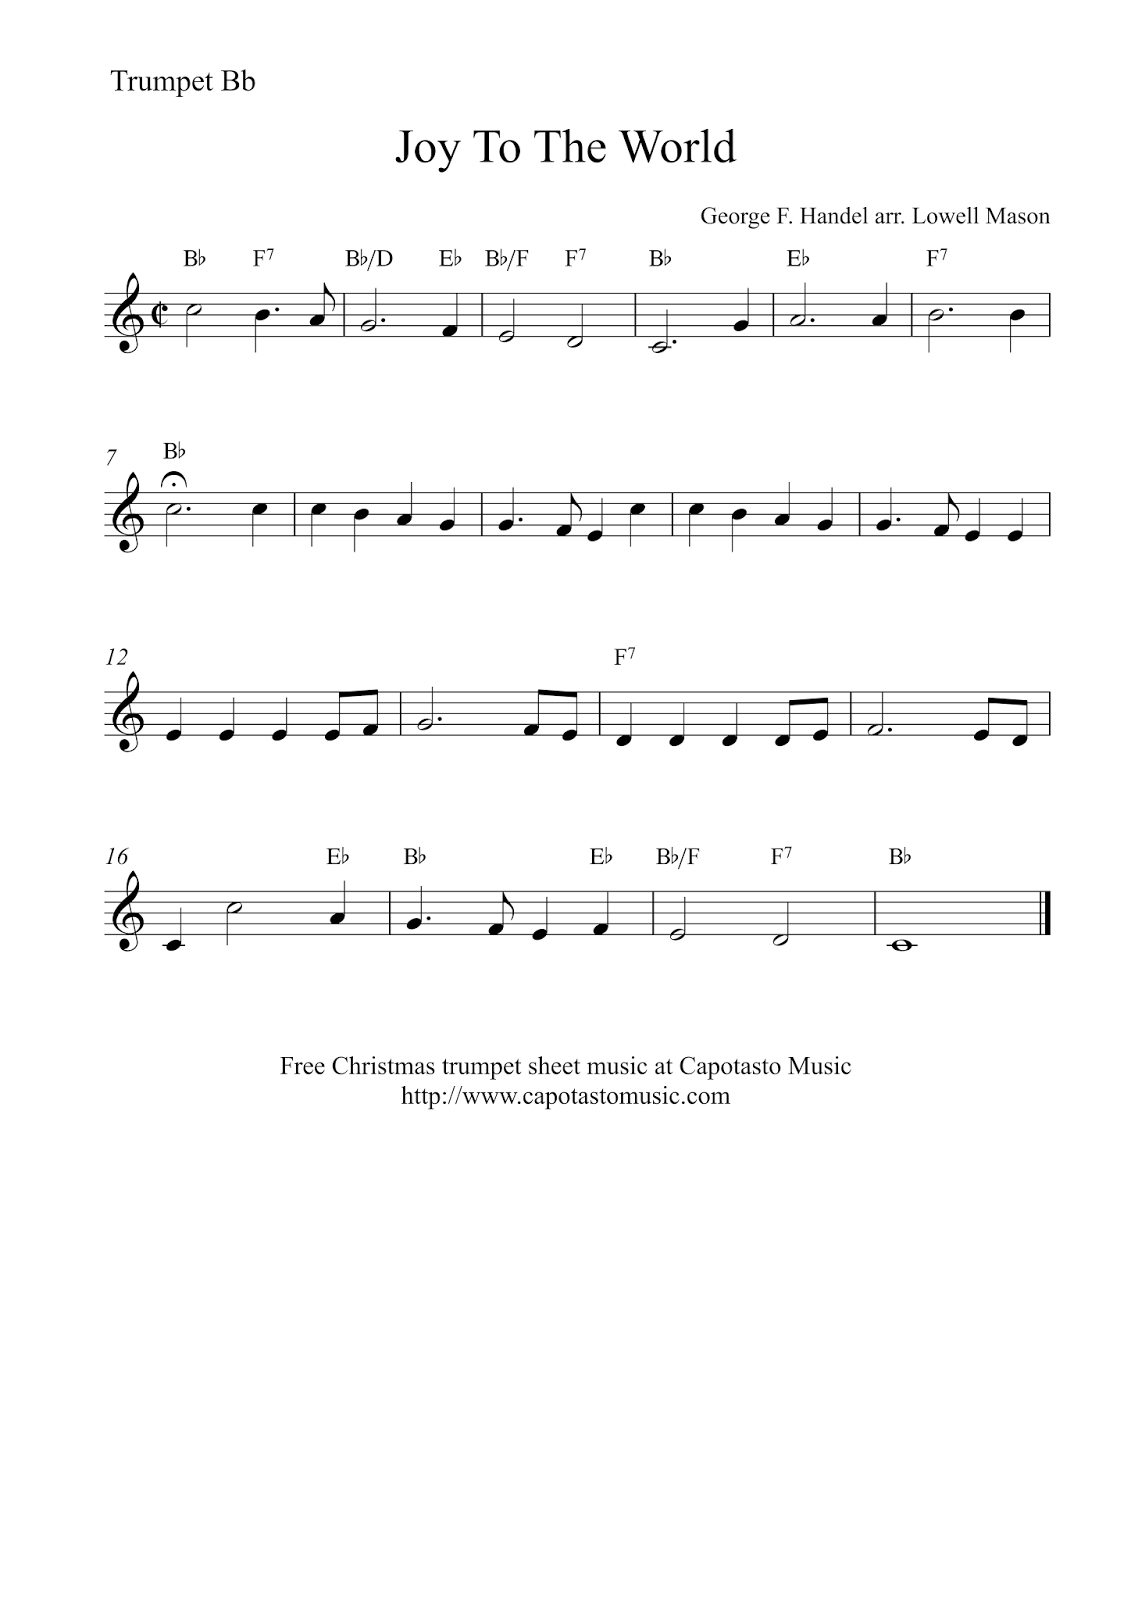 Joy To The World | Free Christmas Trumpet Sheet Music - Free Printable Sheet Music For Trumpet